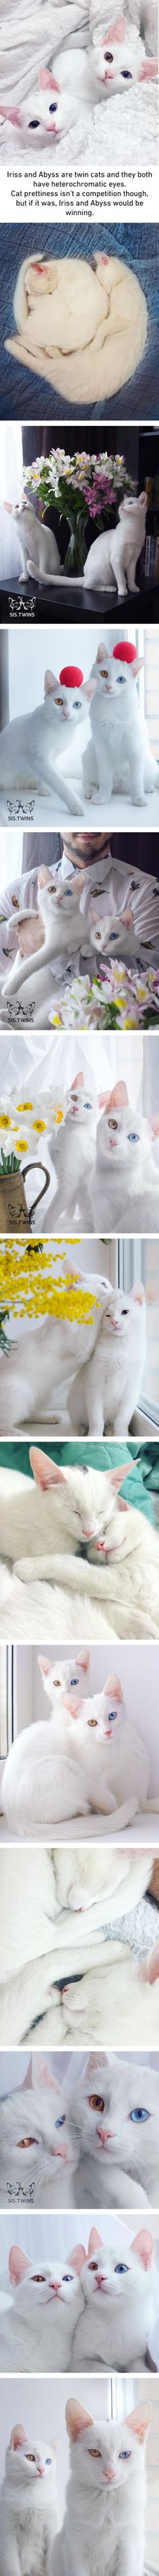 These Photogenic Twin Cats Are Prettier Than Most Of Us